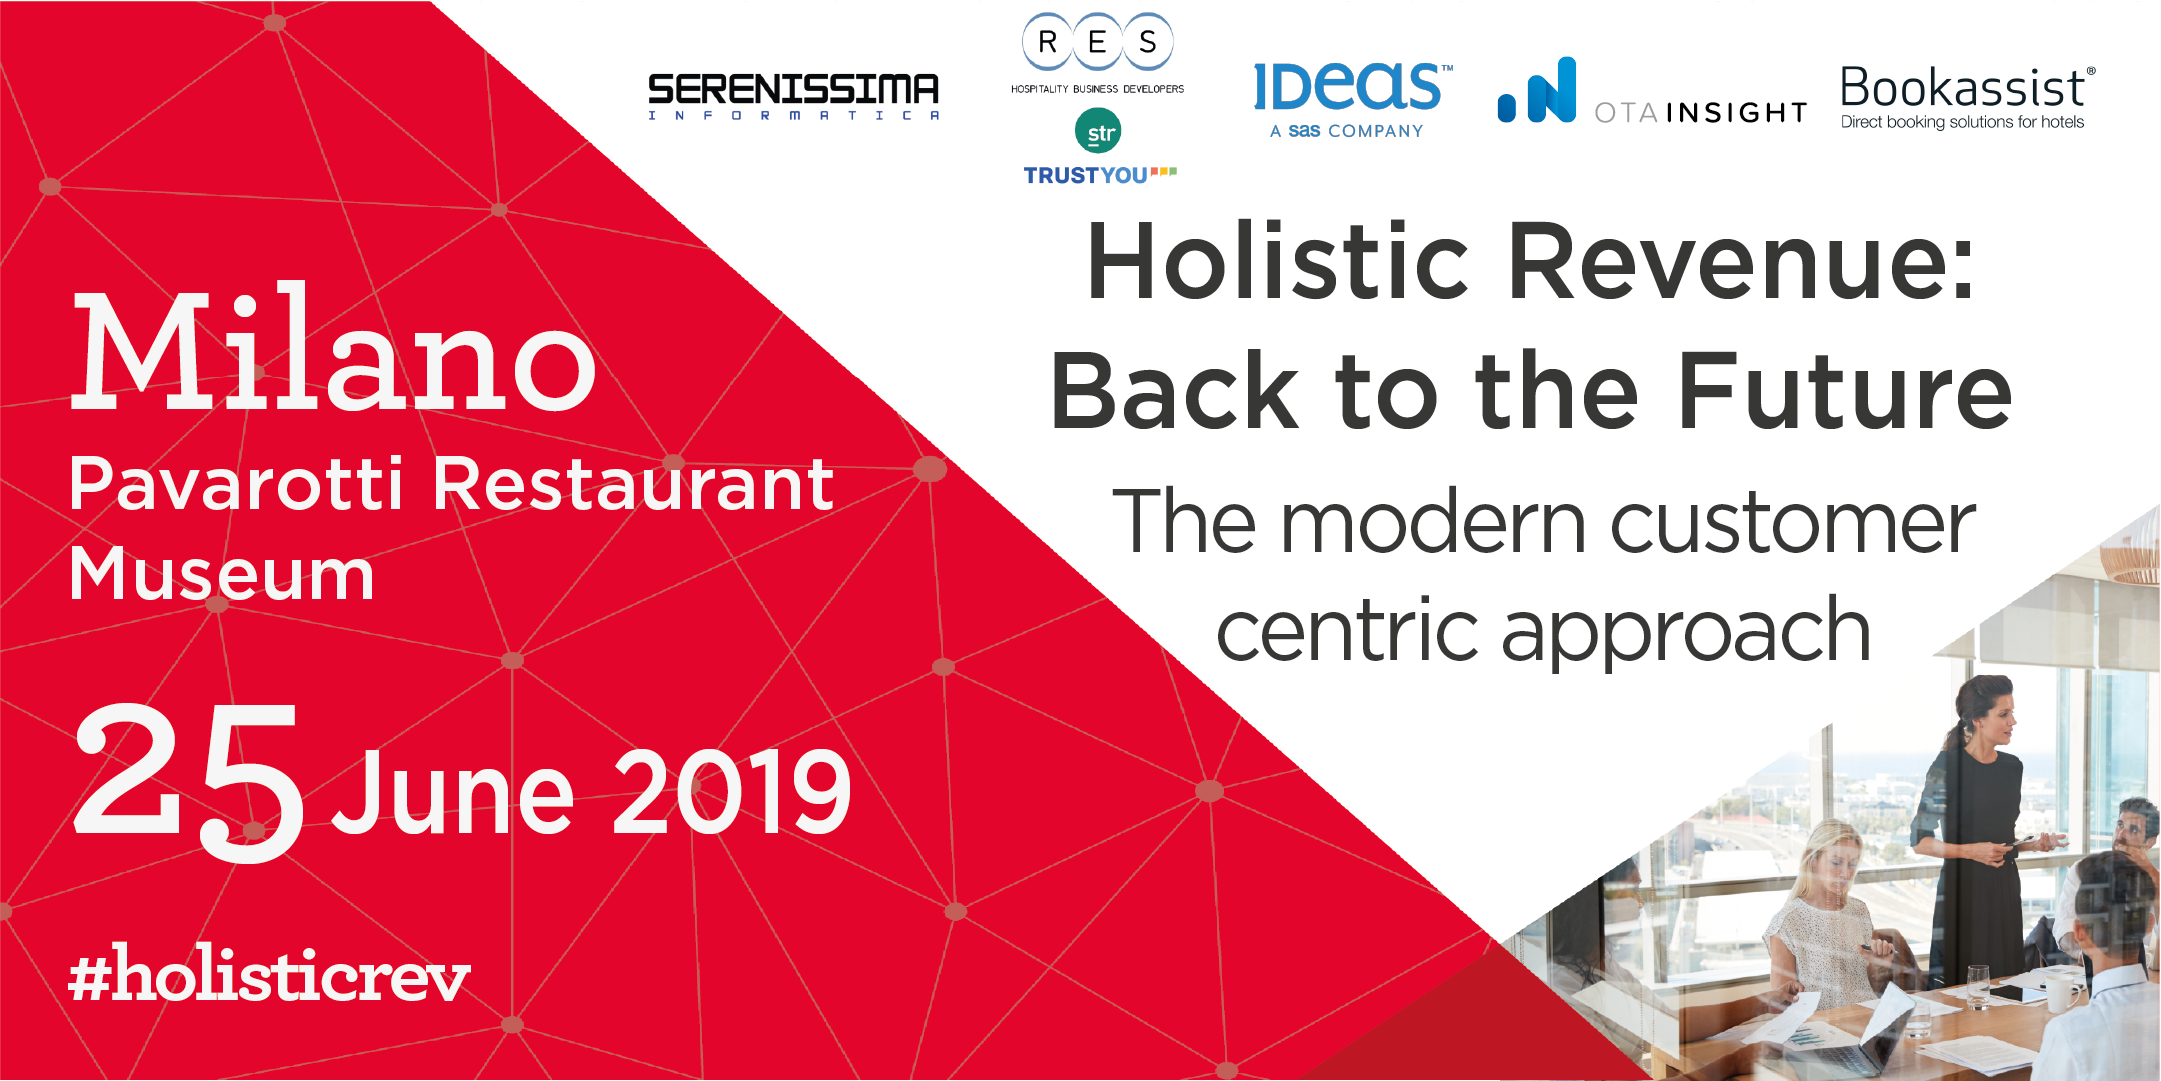 Roadshow 2019 > Holistic Revenue: Back to the Future! (MI)